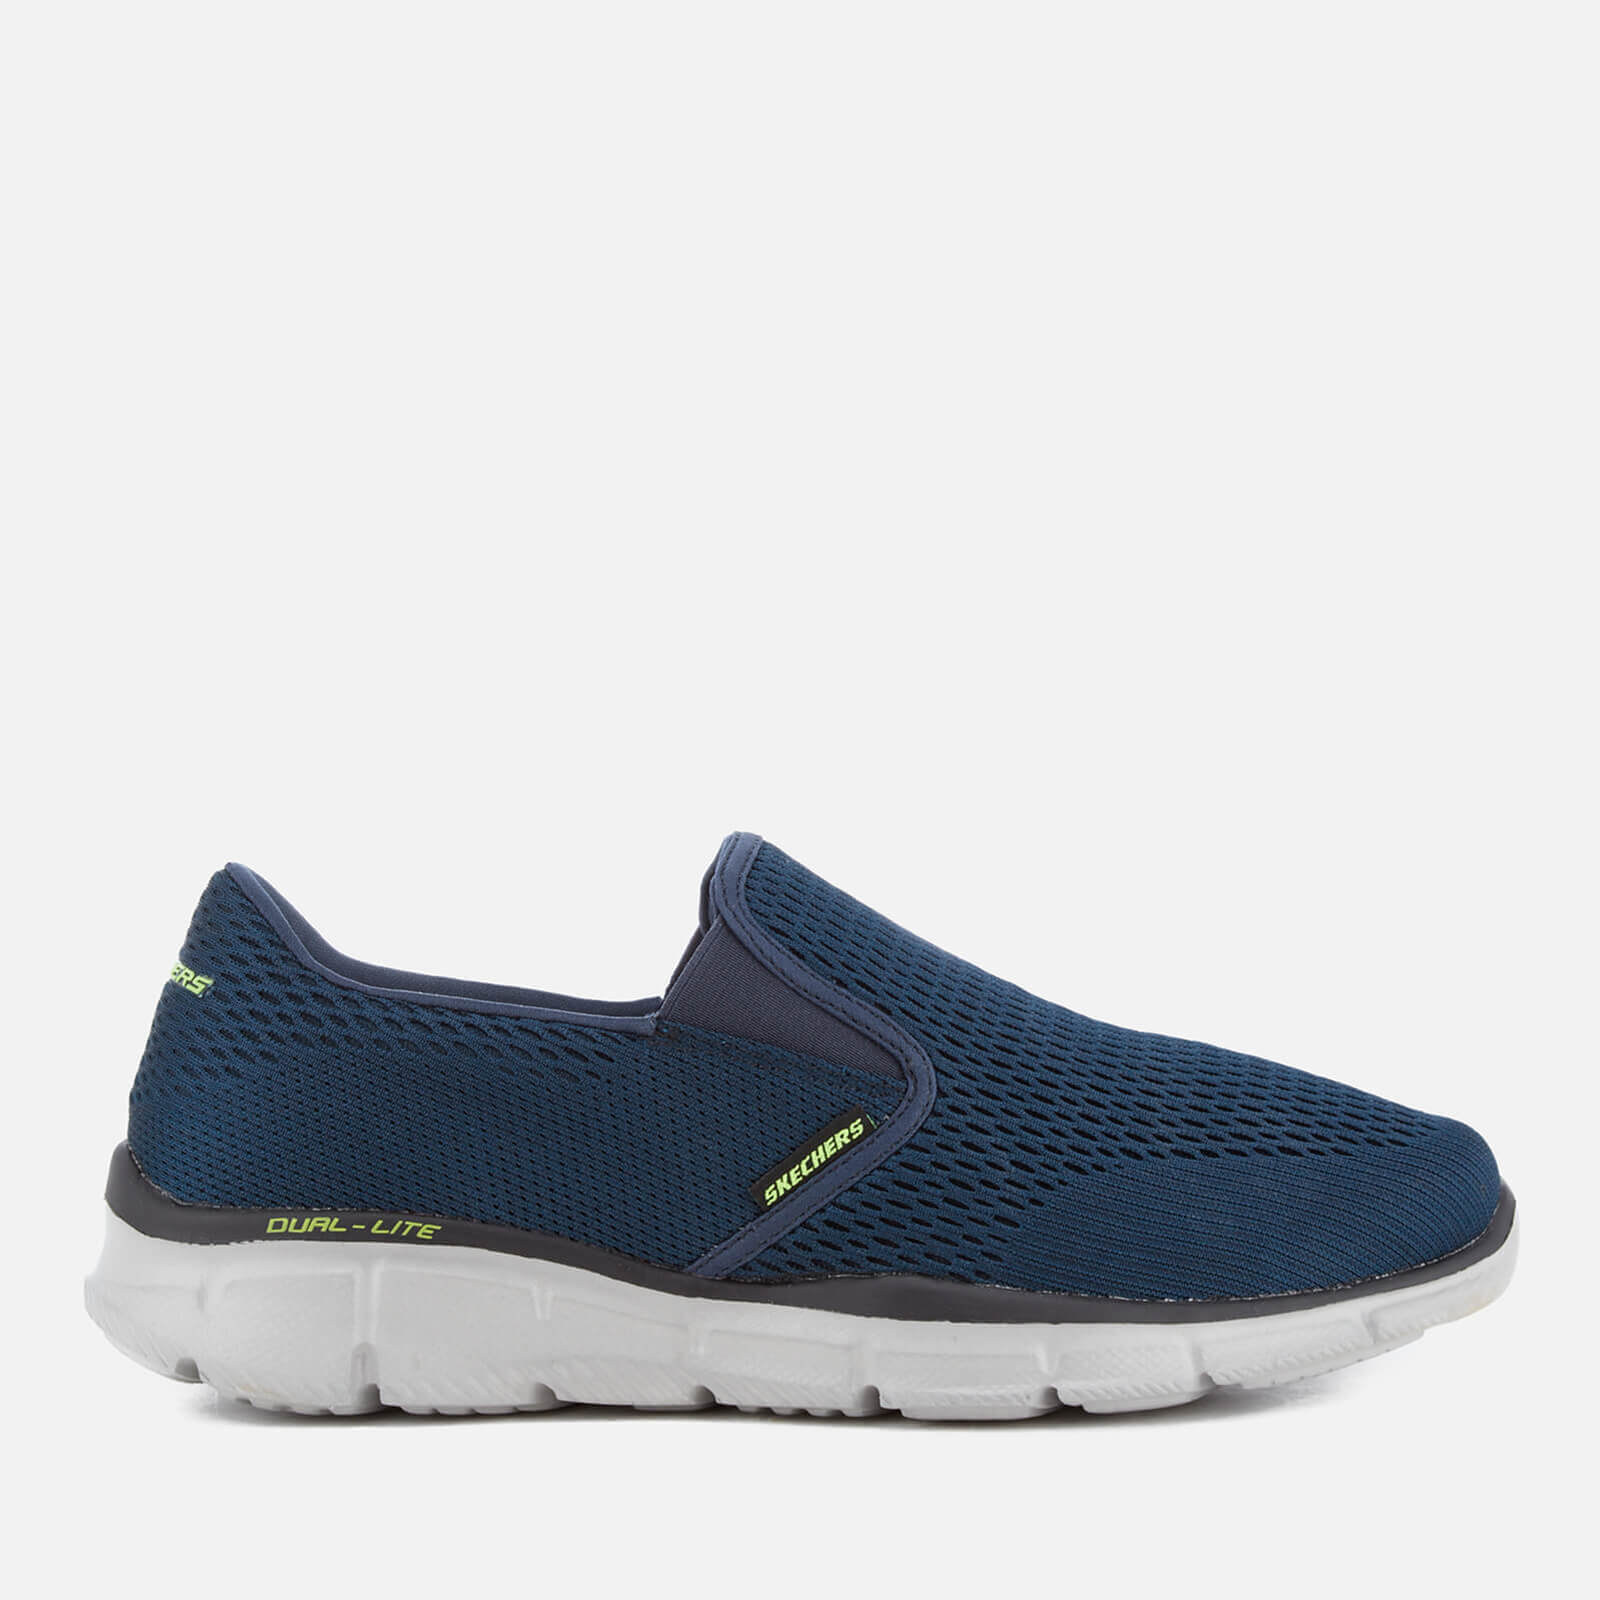 Baskets Homme Equalizer Double-Play Skechers - Bleu Marine